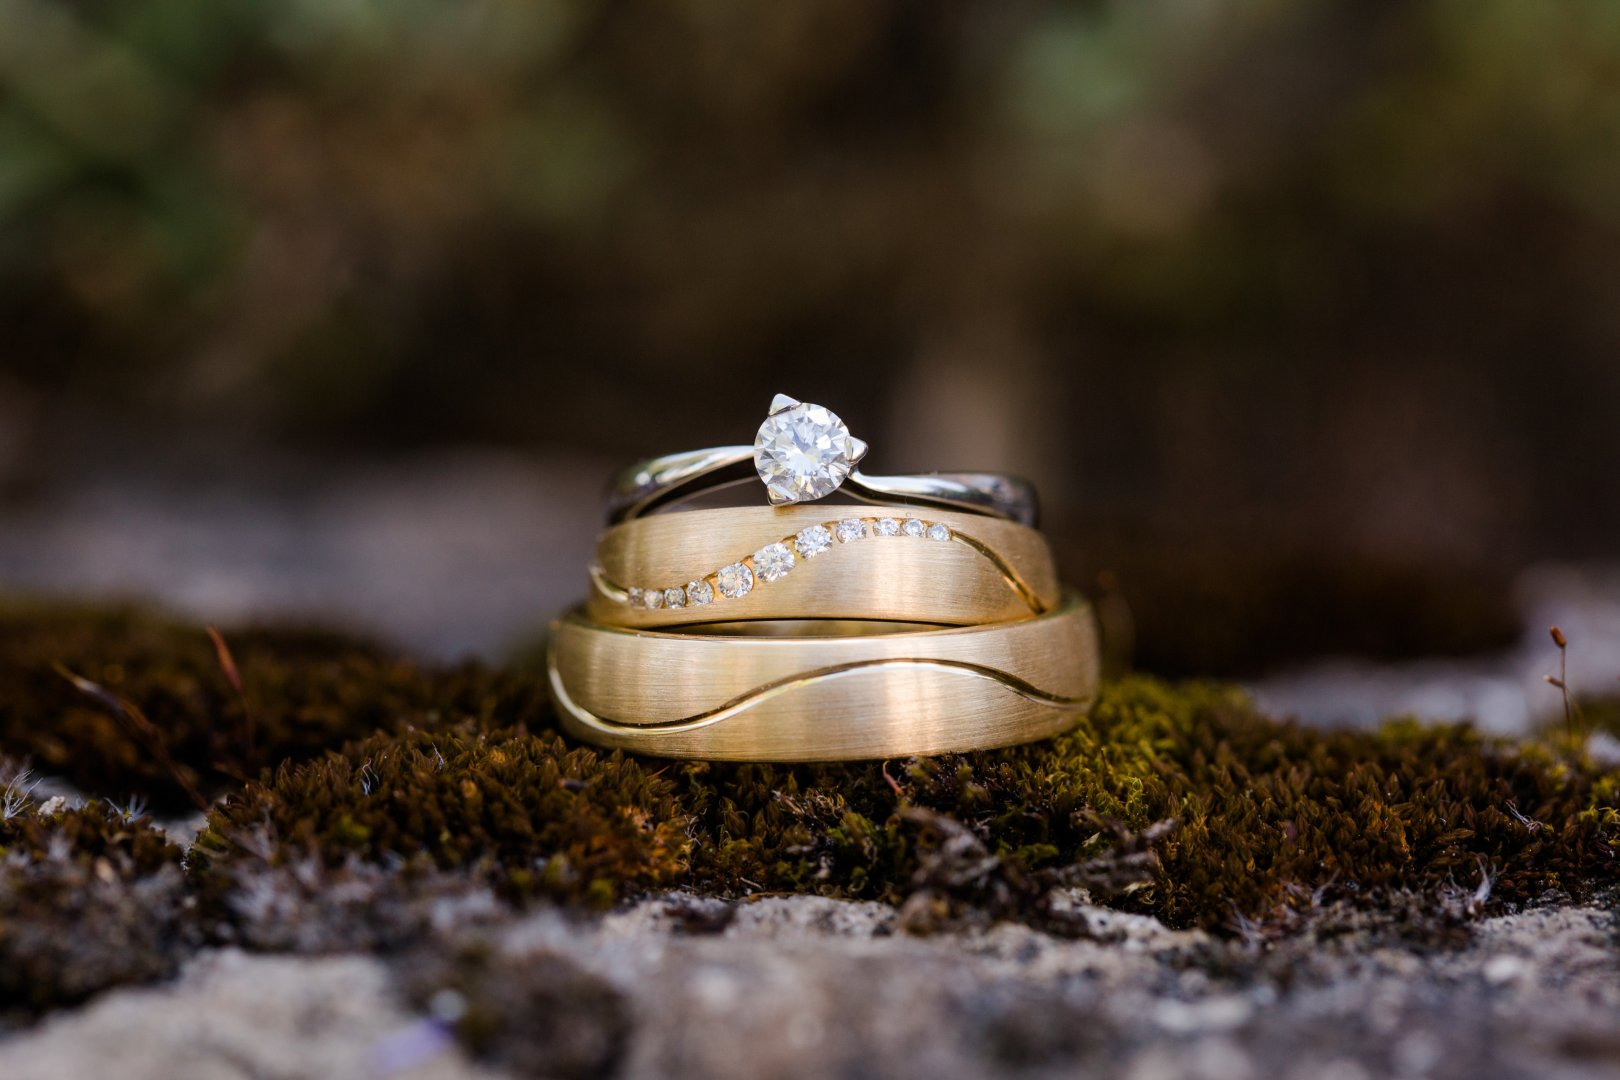 Footwear Wedding ceremony supply Wedding ring Shoe Tree Ring Photography Metal Fashion accessory Plant Tableware Still life photography